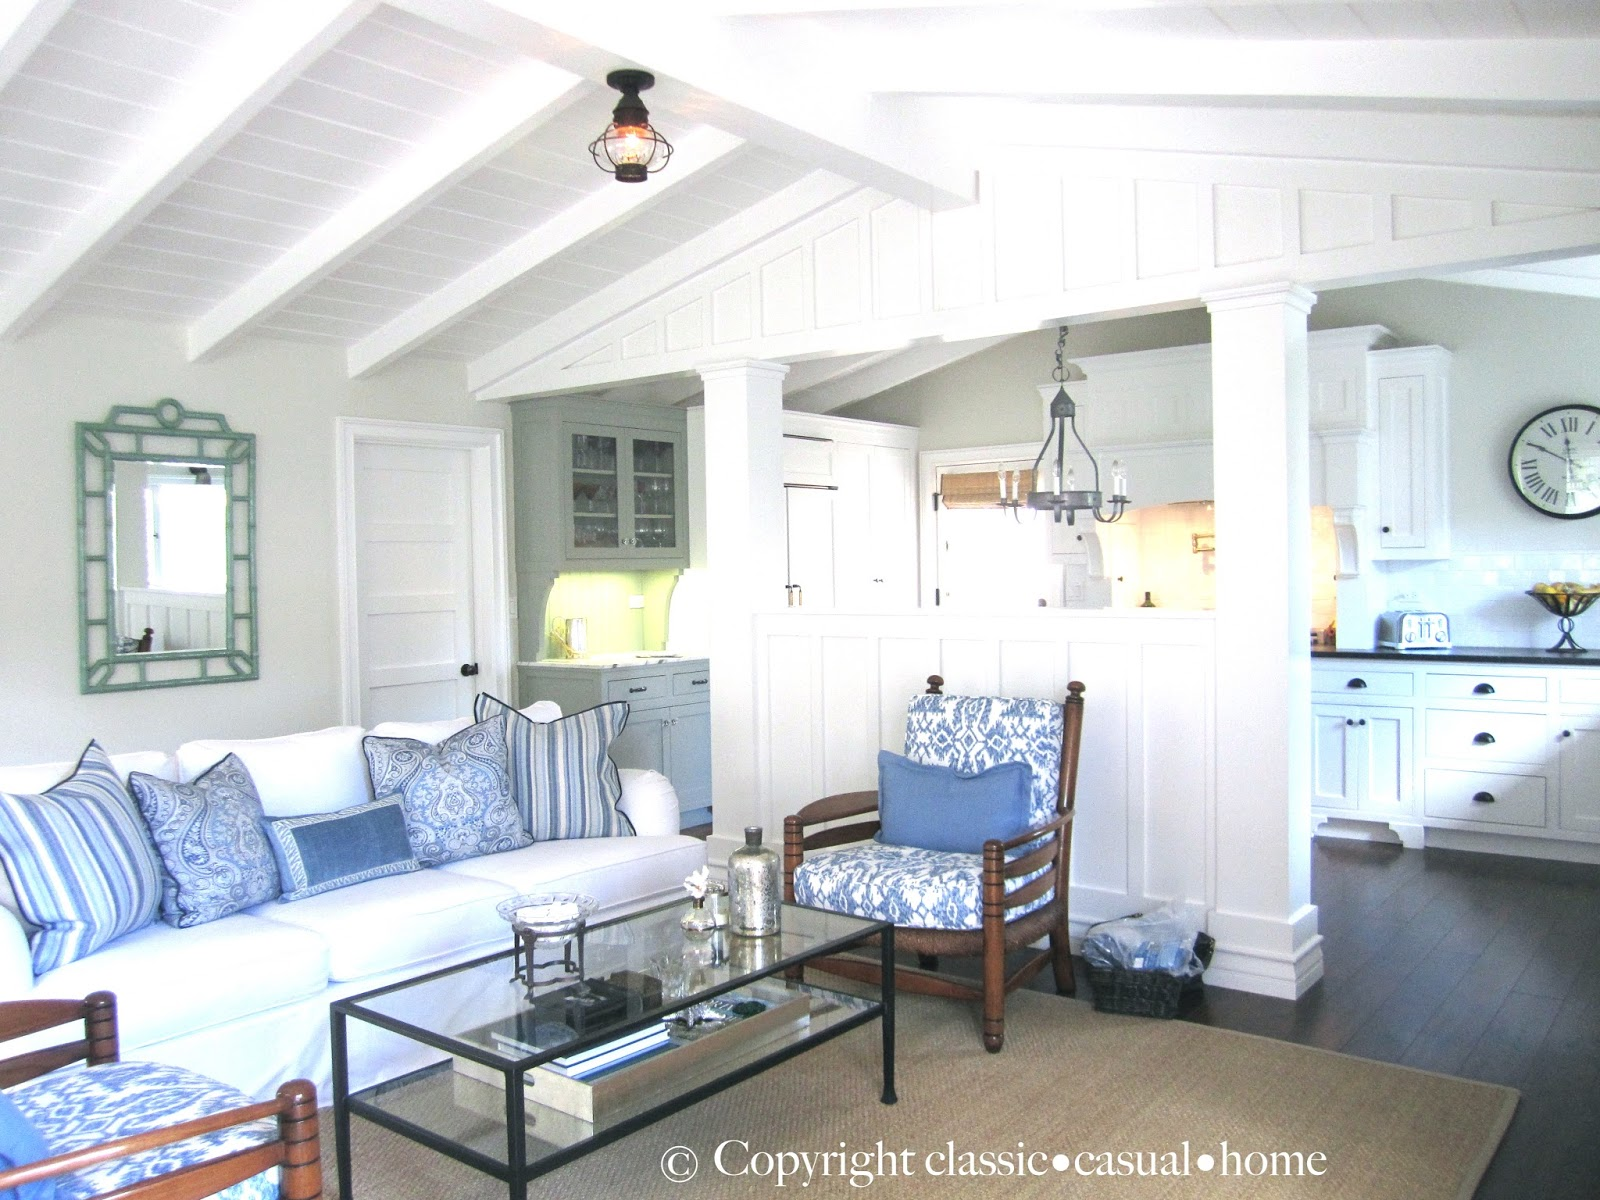 Living Room Home And Interiors classic casual home interiors blue and white beach cottage